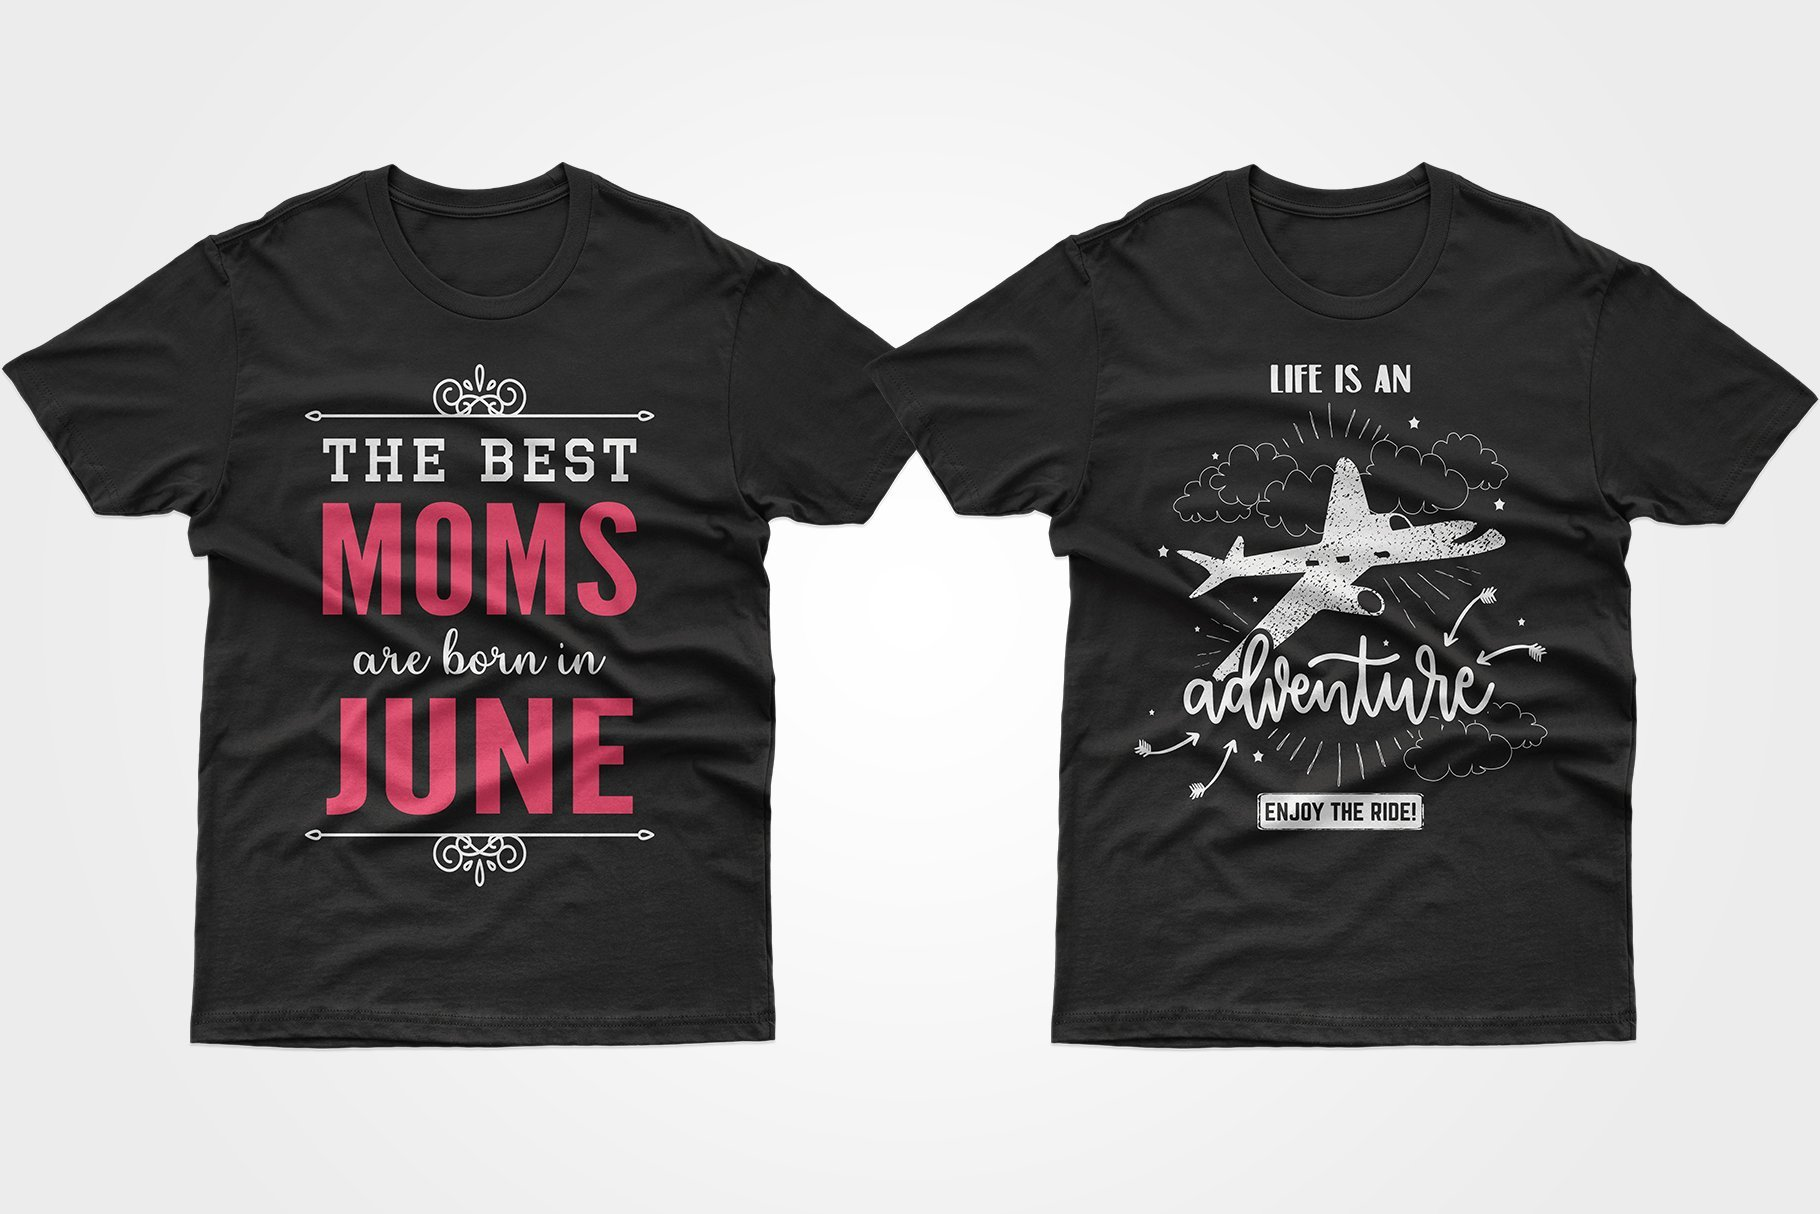 Two black T-shirts - one with a bright phrase about mom, the other with an airplane.